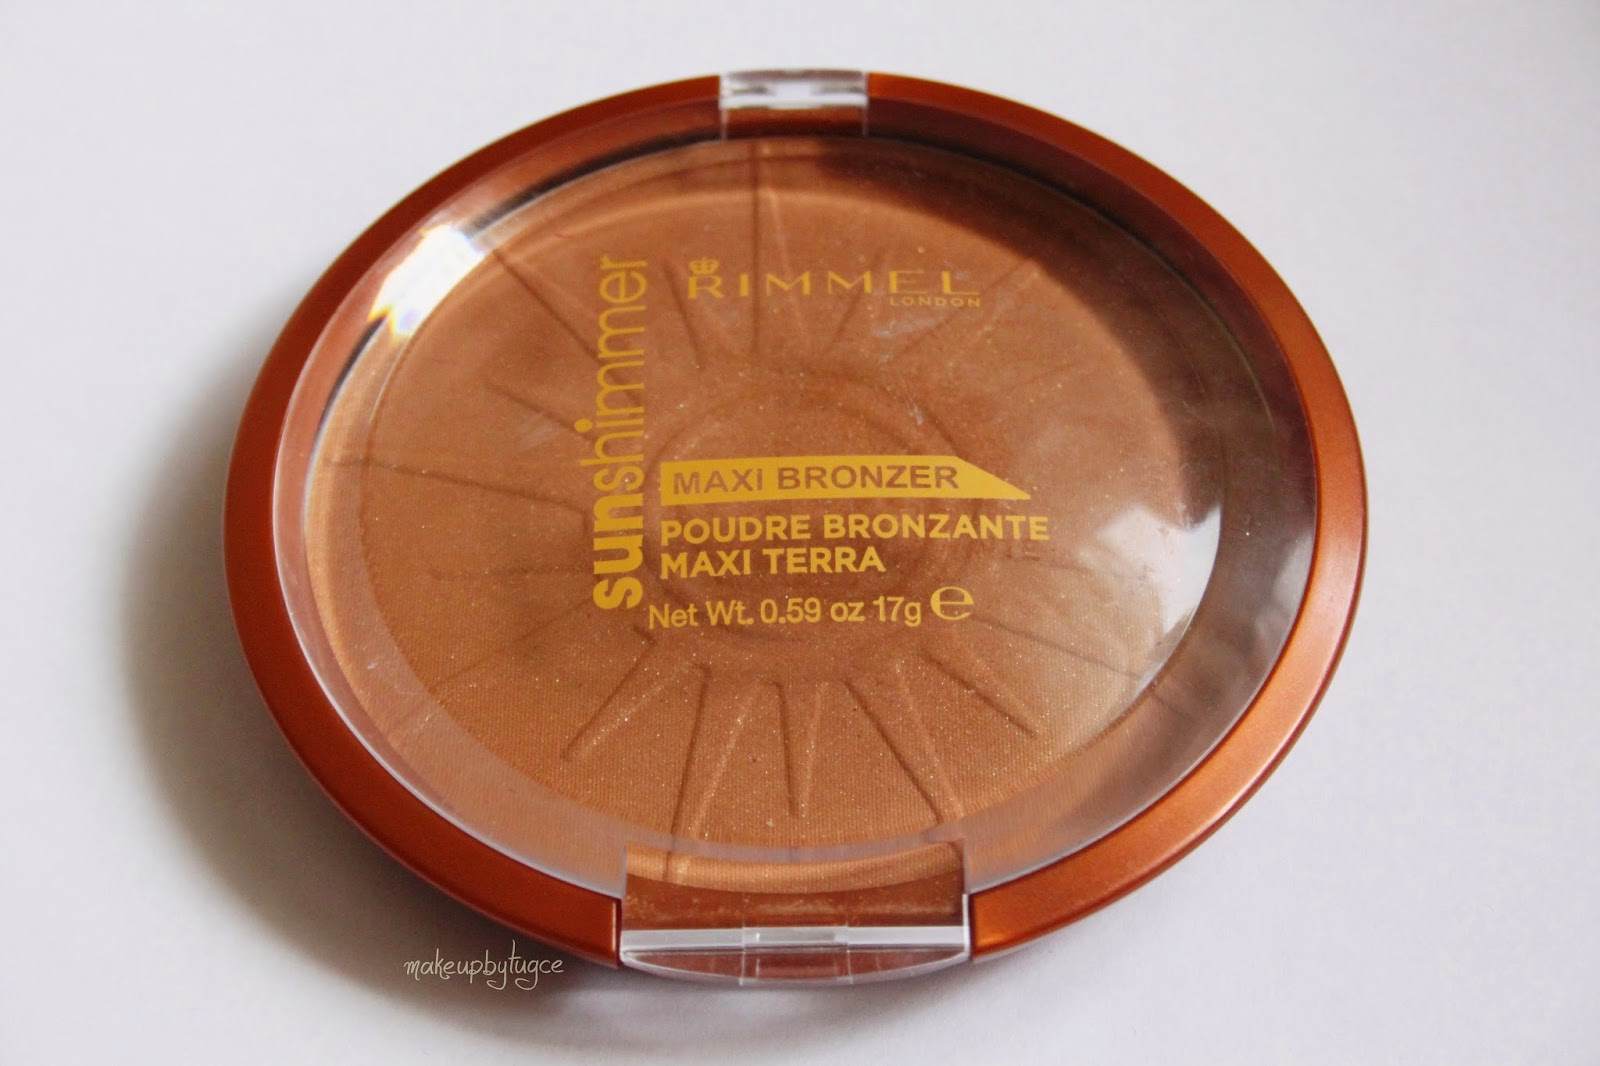 Rimmel London 3 in 1 Shimmering Bronzer incelemesi